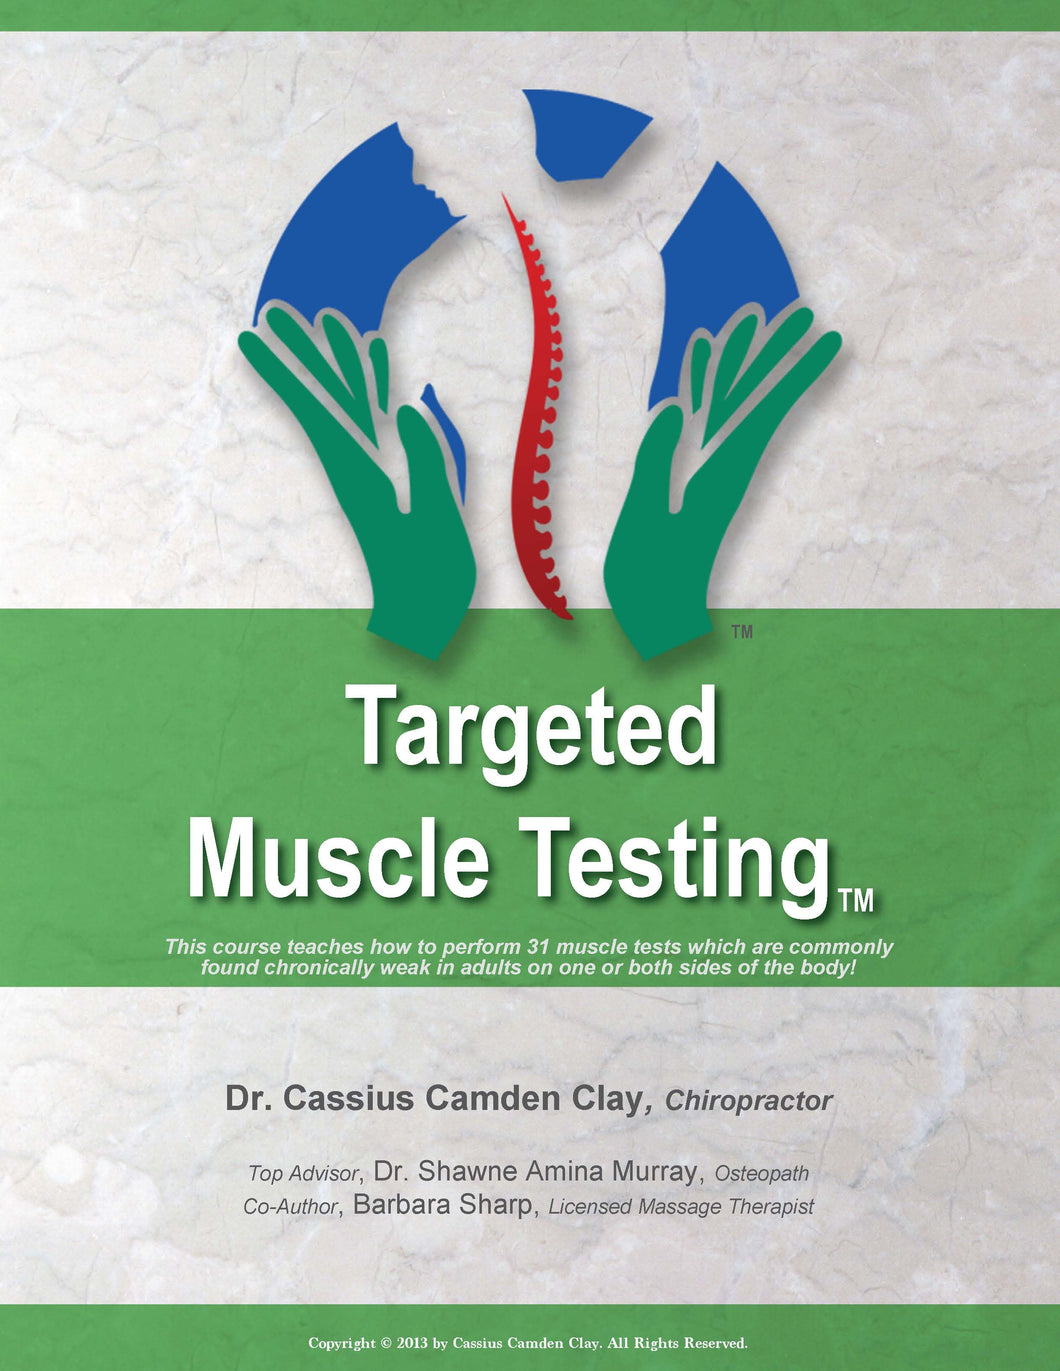 Targeted Muscle Testing